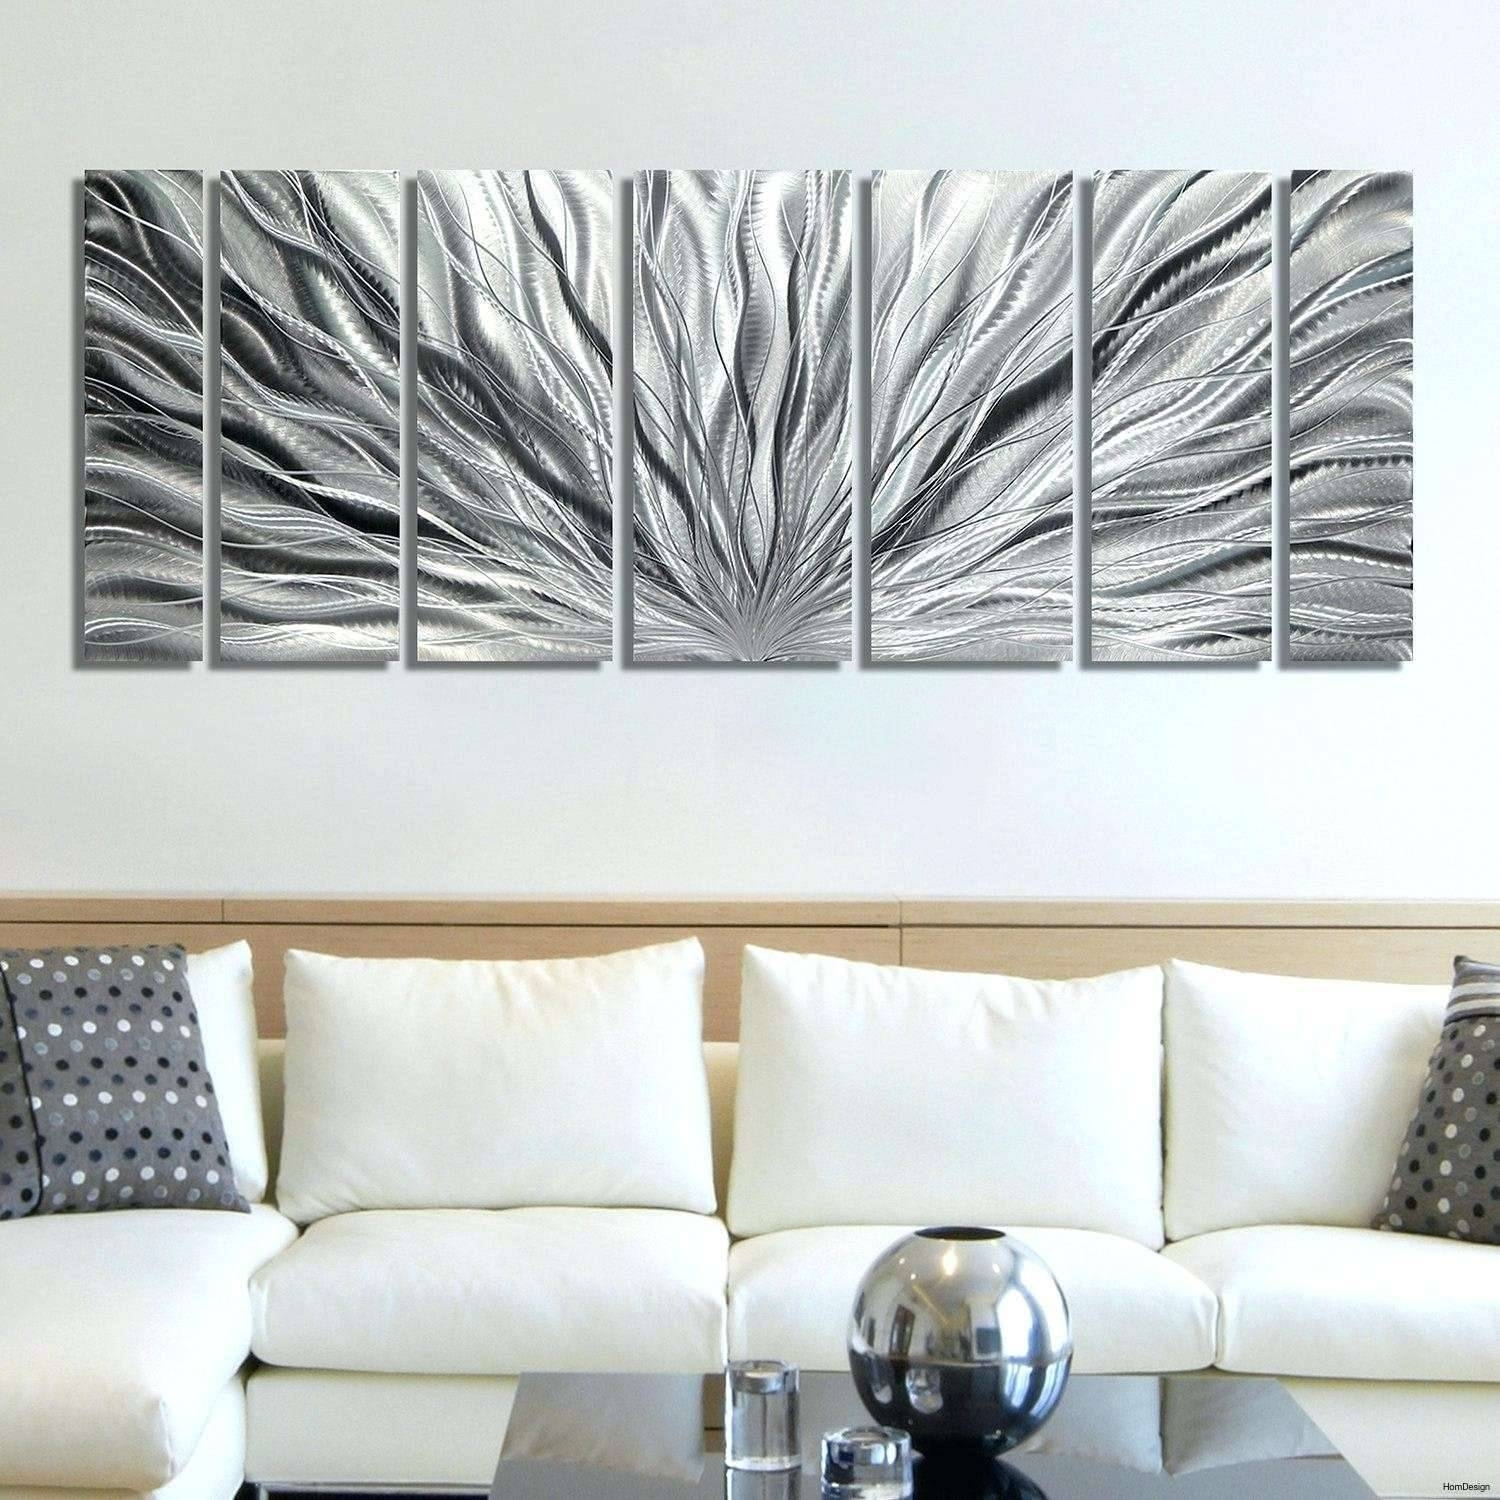 60 Awesome Framed Wall Art For Living Room | Downtownerinmills Intended For Most Recently Released Framed Wall Art (View 12 of 15)